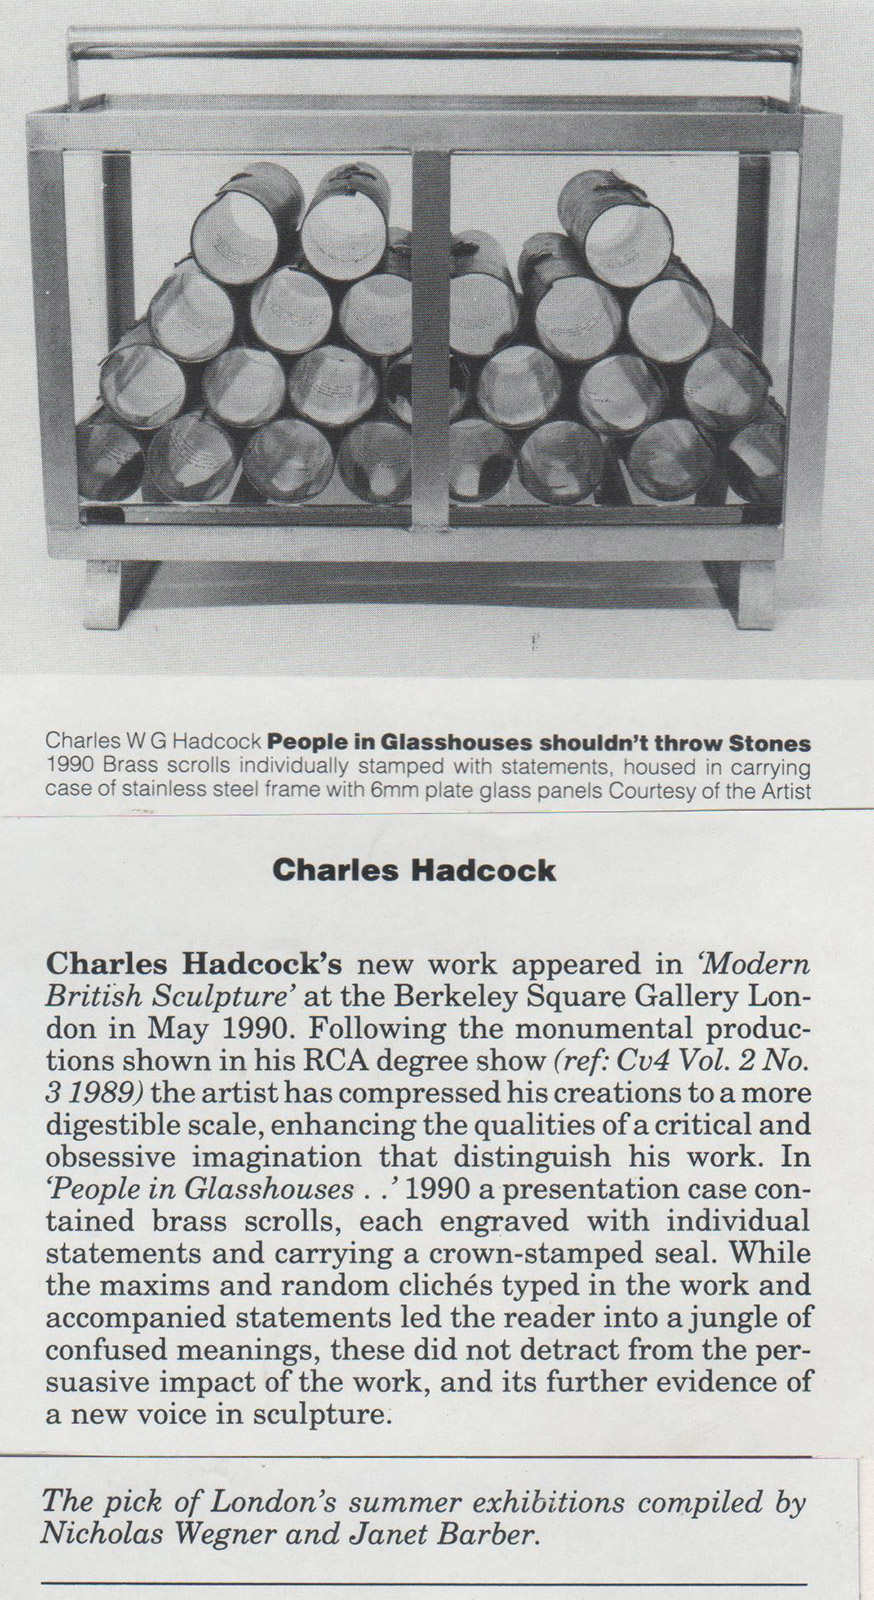 Charles Hadcock at The Berkeley Square Gallery